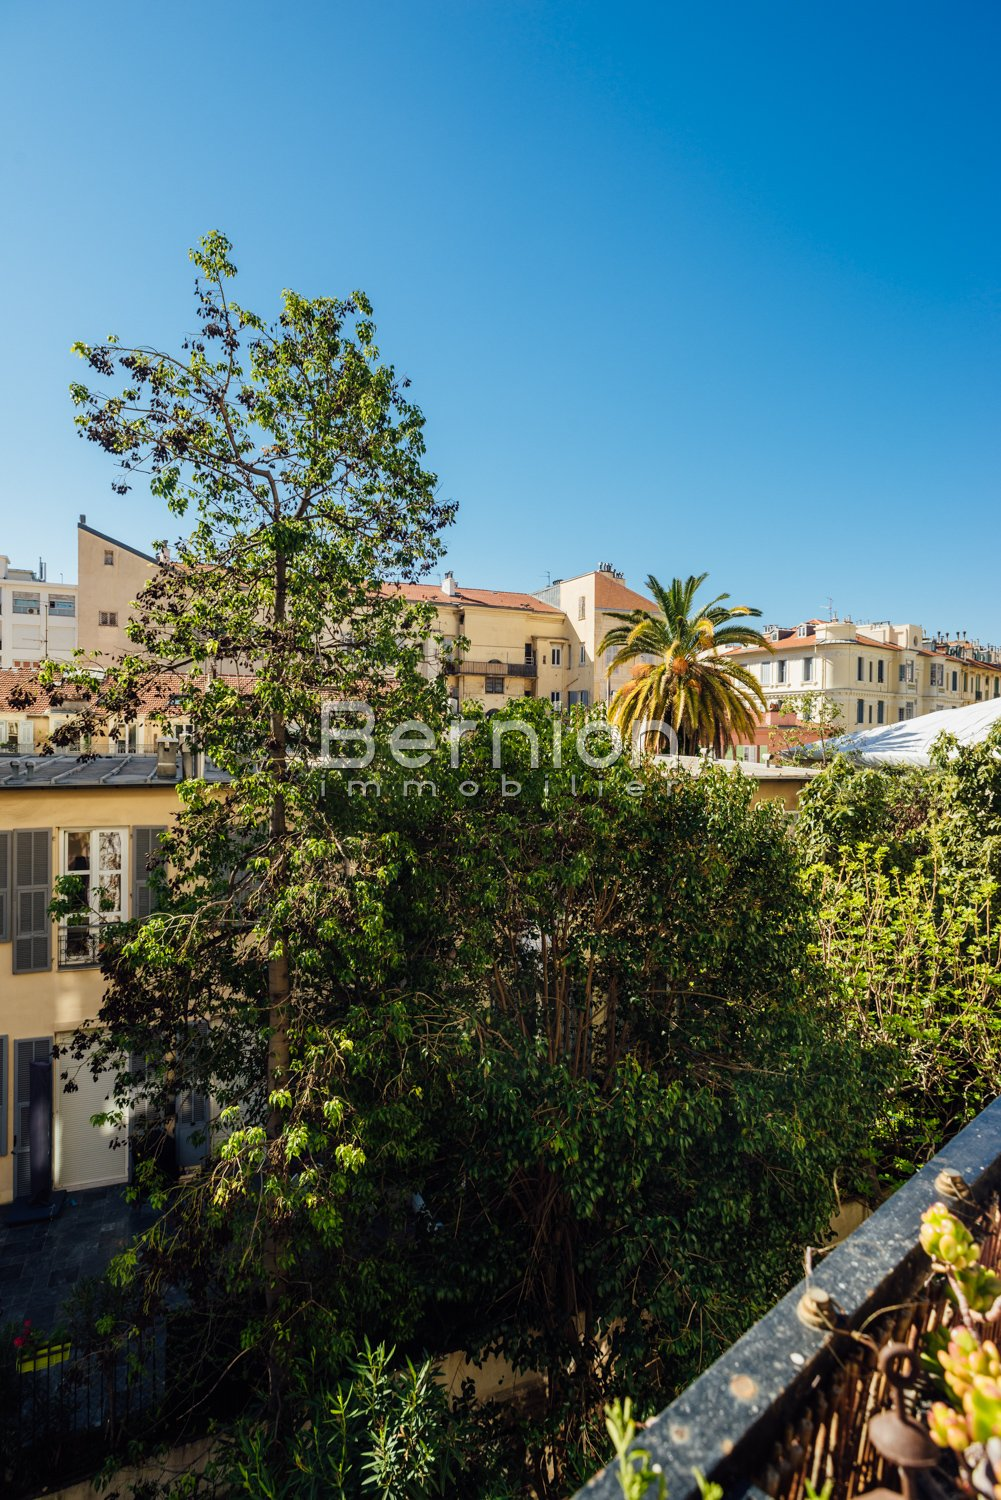 For Sale, Nice City Center Beautiful 72 sqm Apartment with terrace in Art Deco Building / photo 5